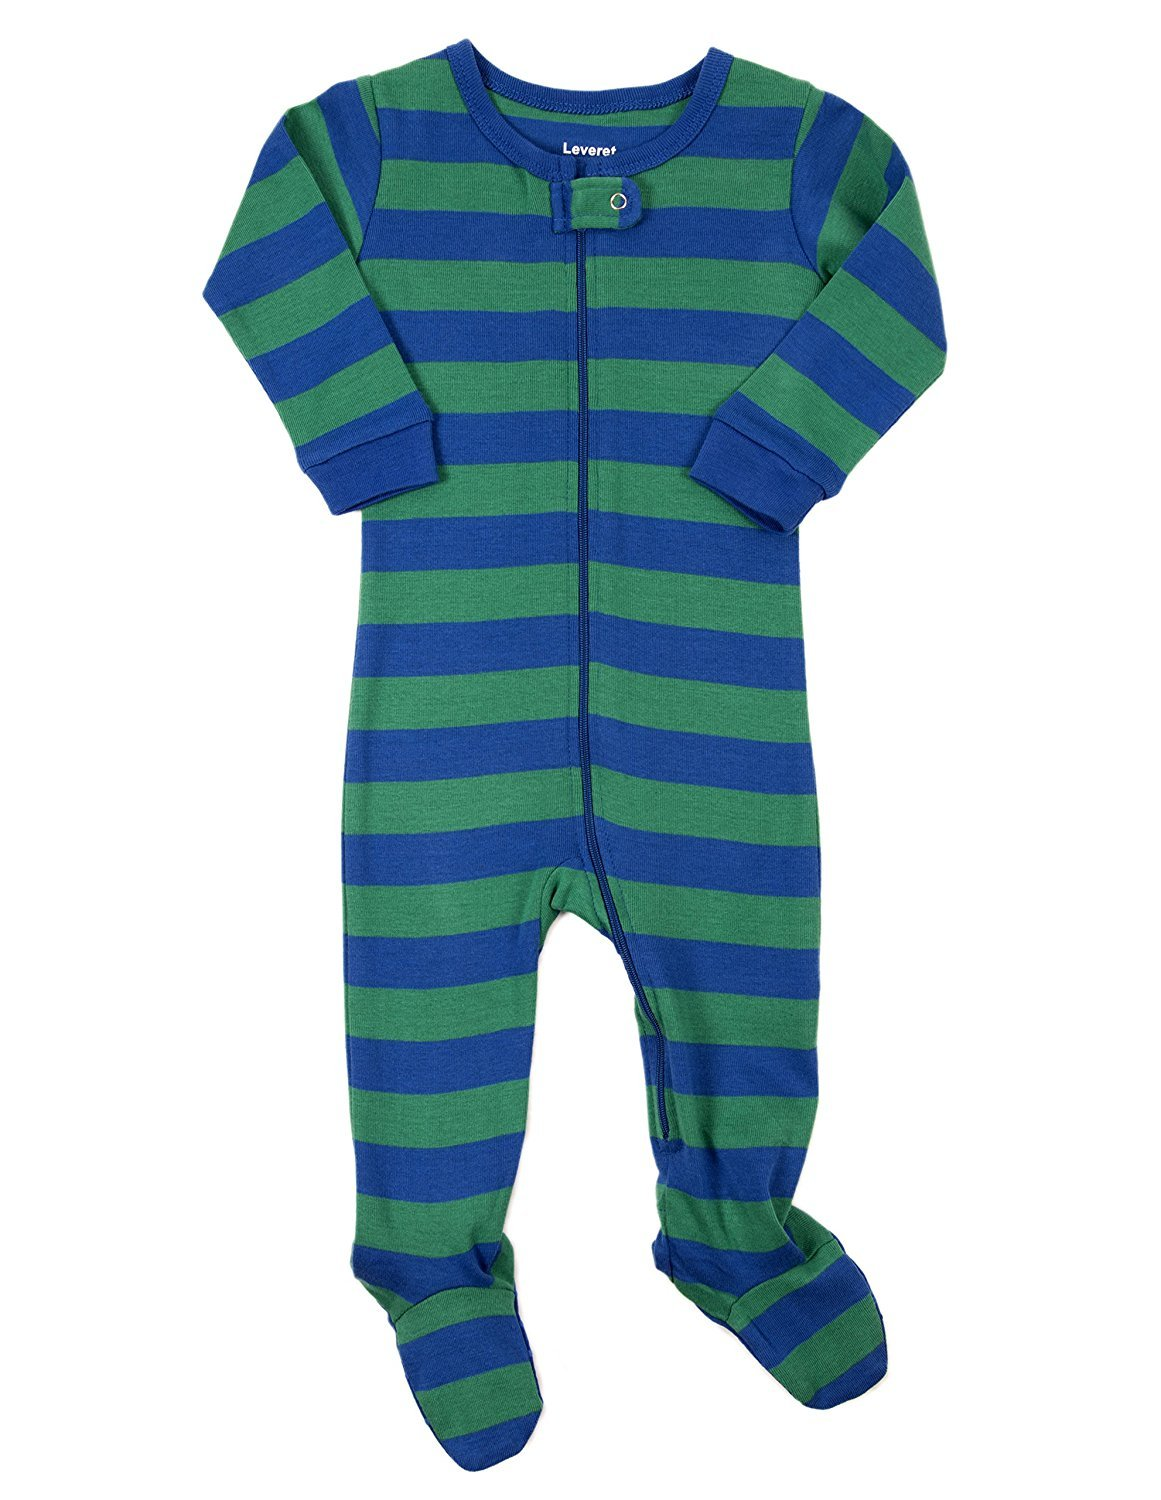 Leveret Striped Footed Pajama Sleeper 100% Cotton (3-6 Months, Blue & Green)